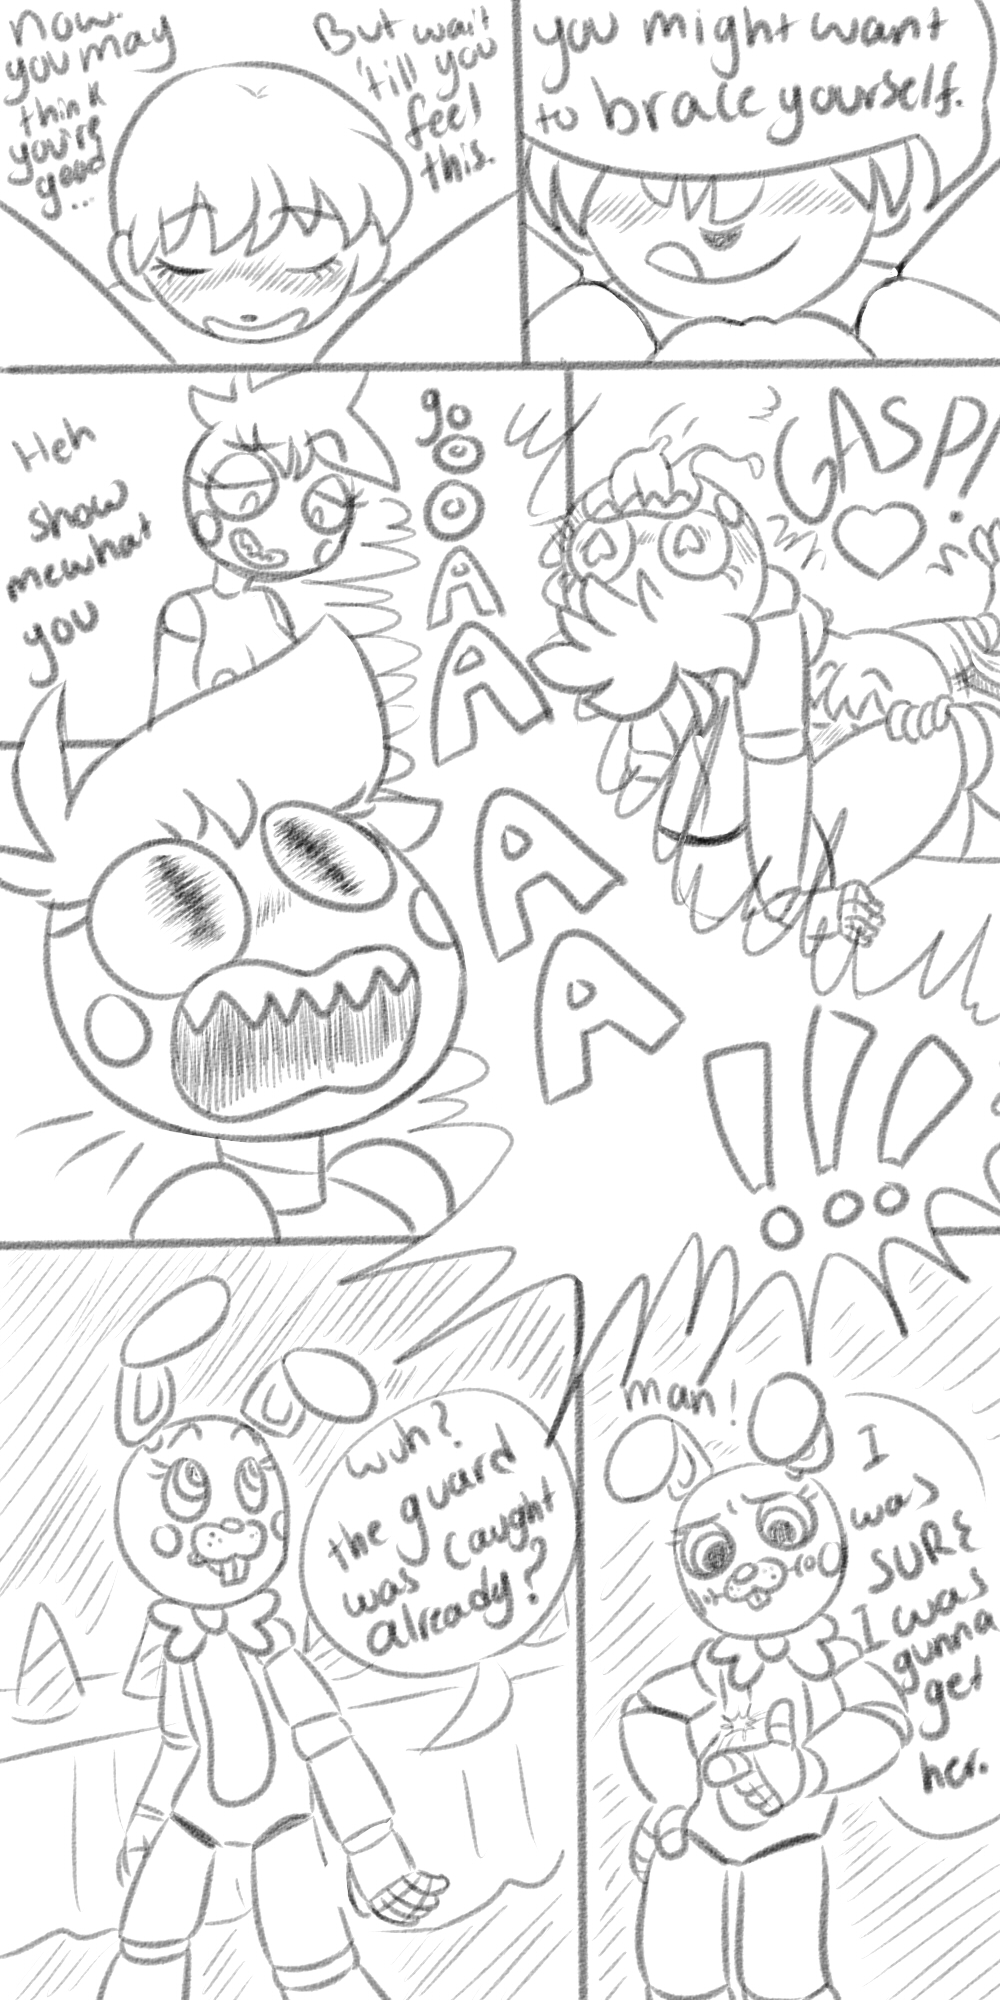 mangle toy sex chica x A sex goblin with a carnival penis